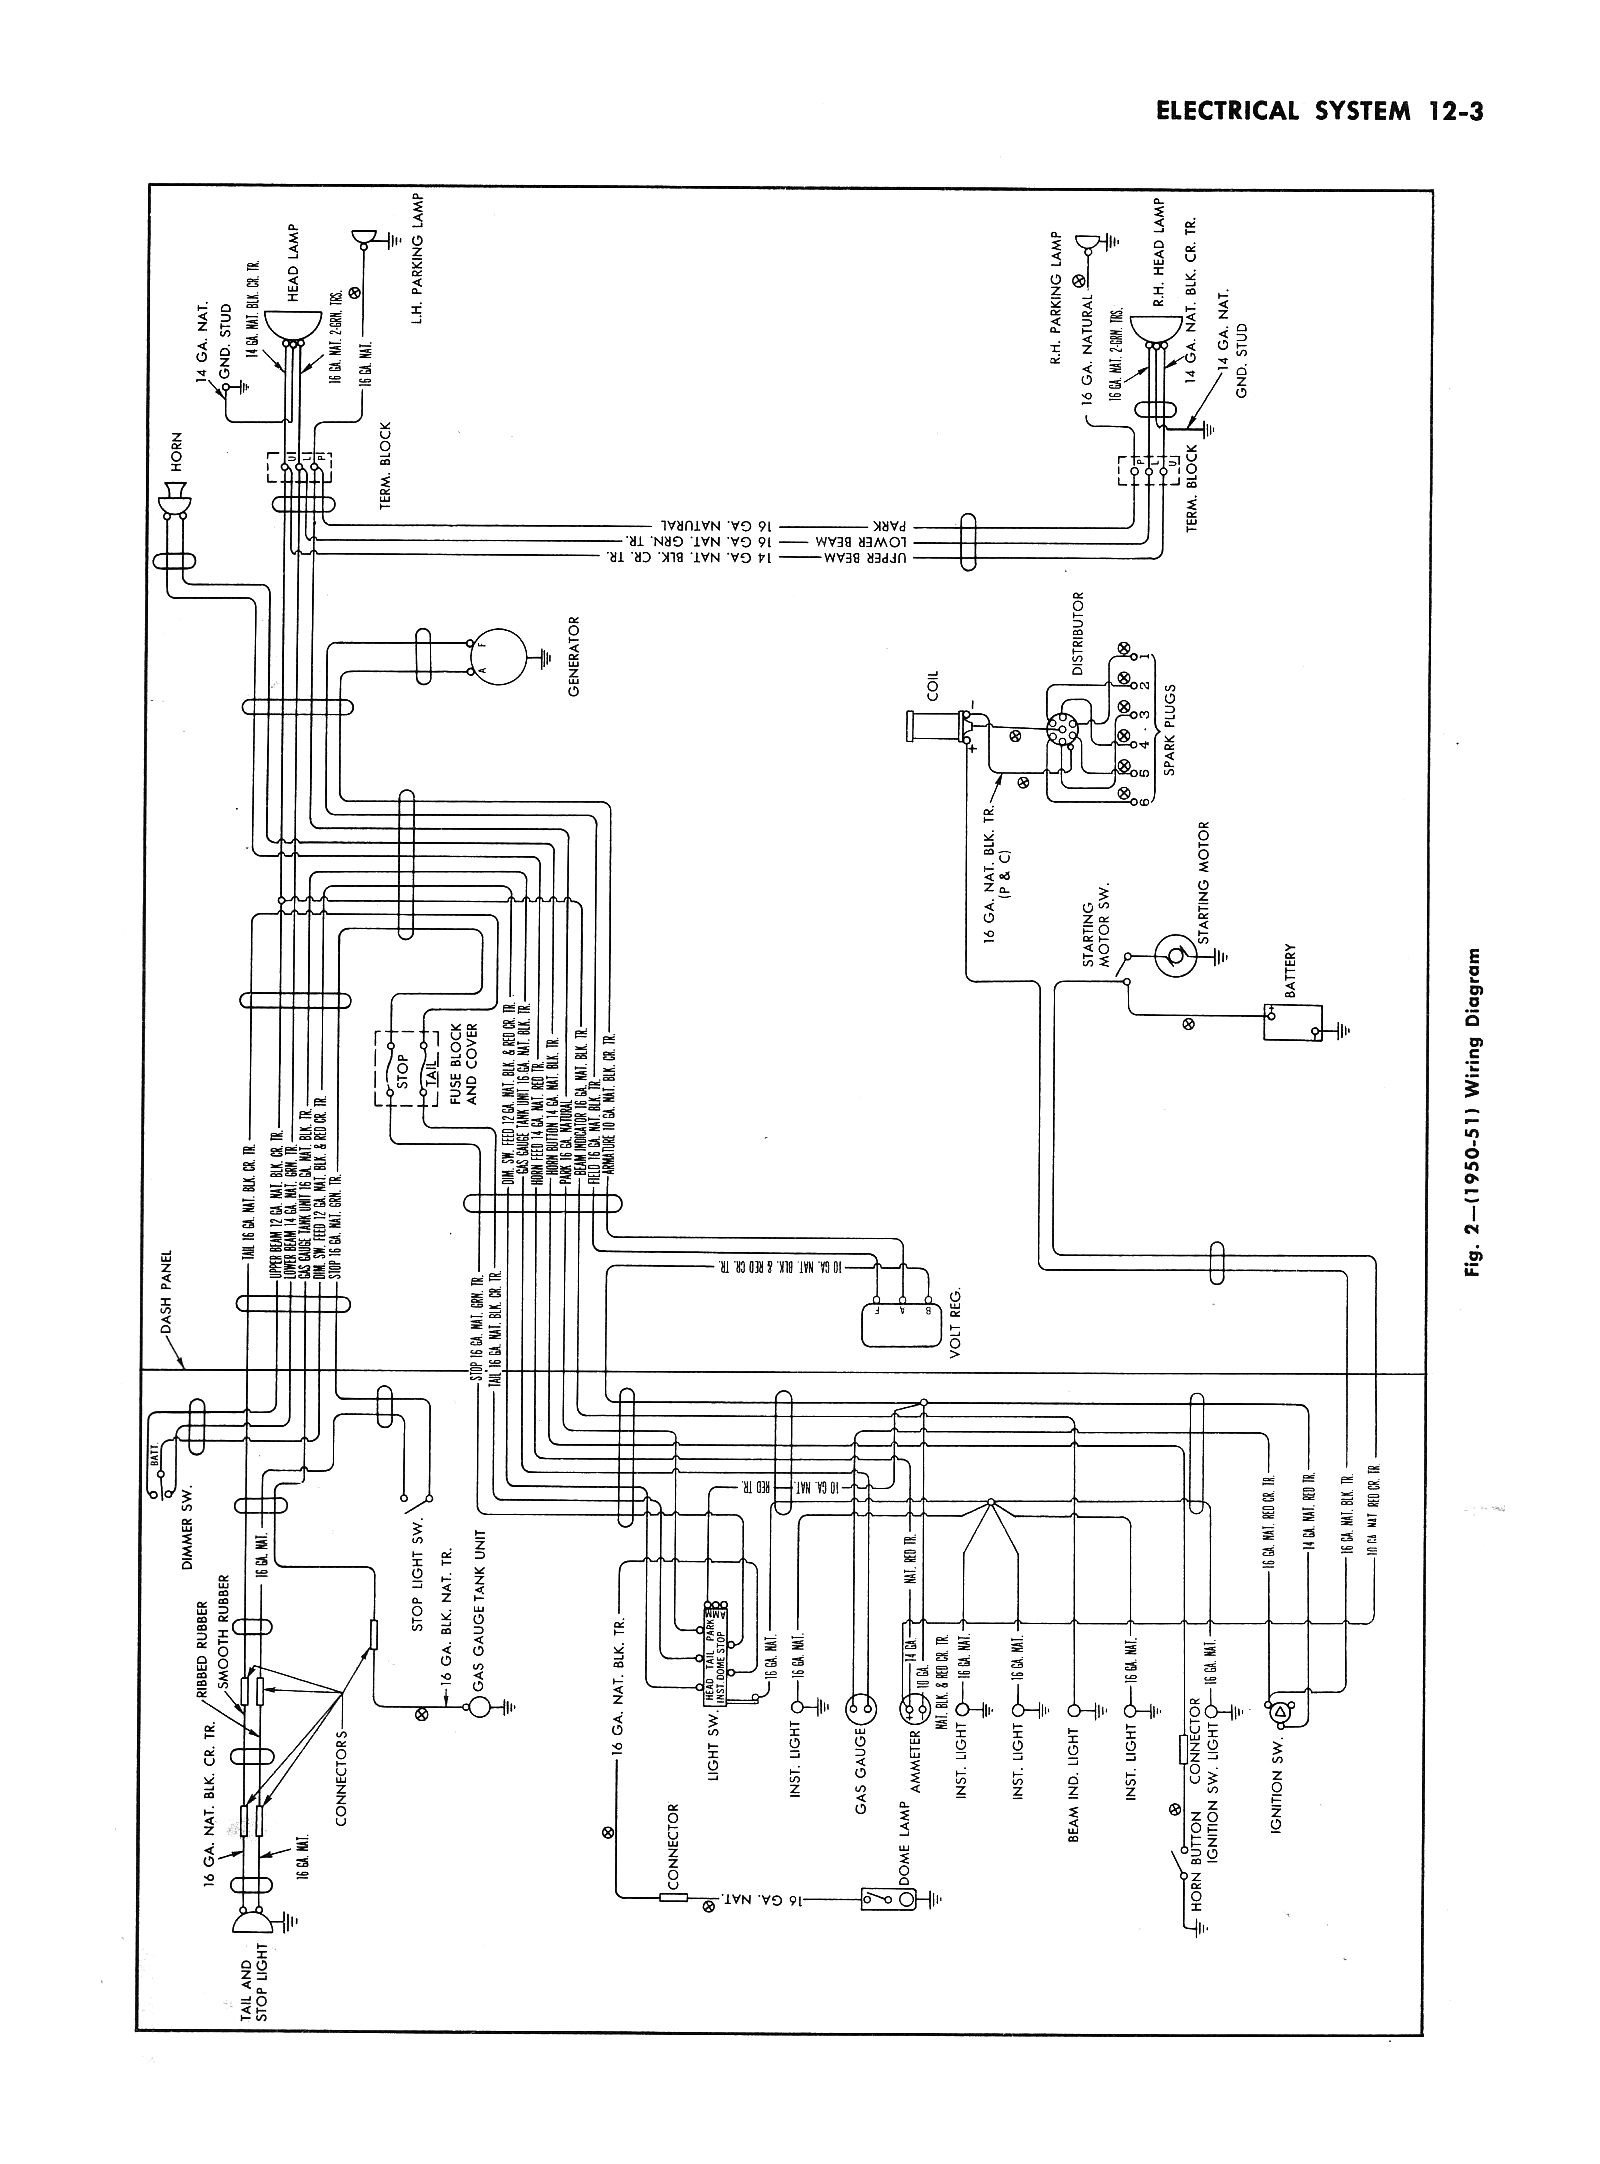 50ctsm1203 chevy wiring diagrams chevy wiring harness diagram at mifinder.co